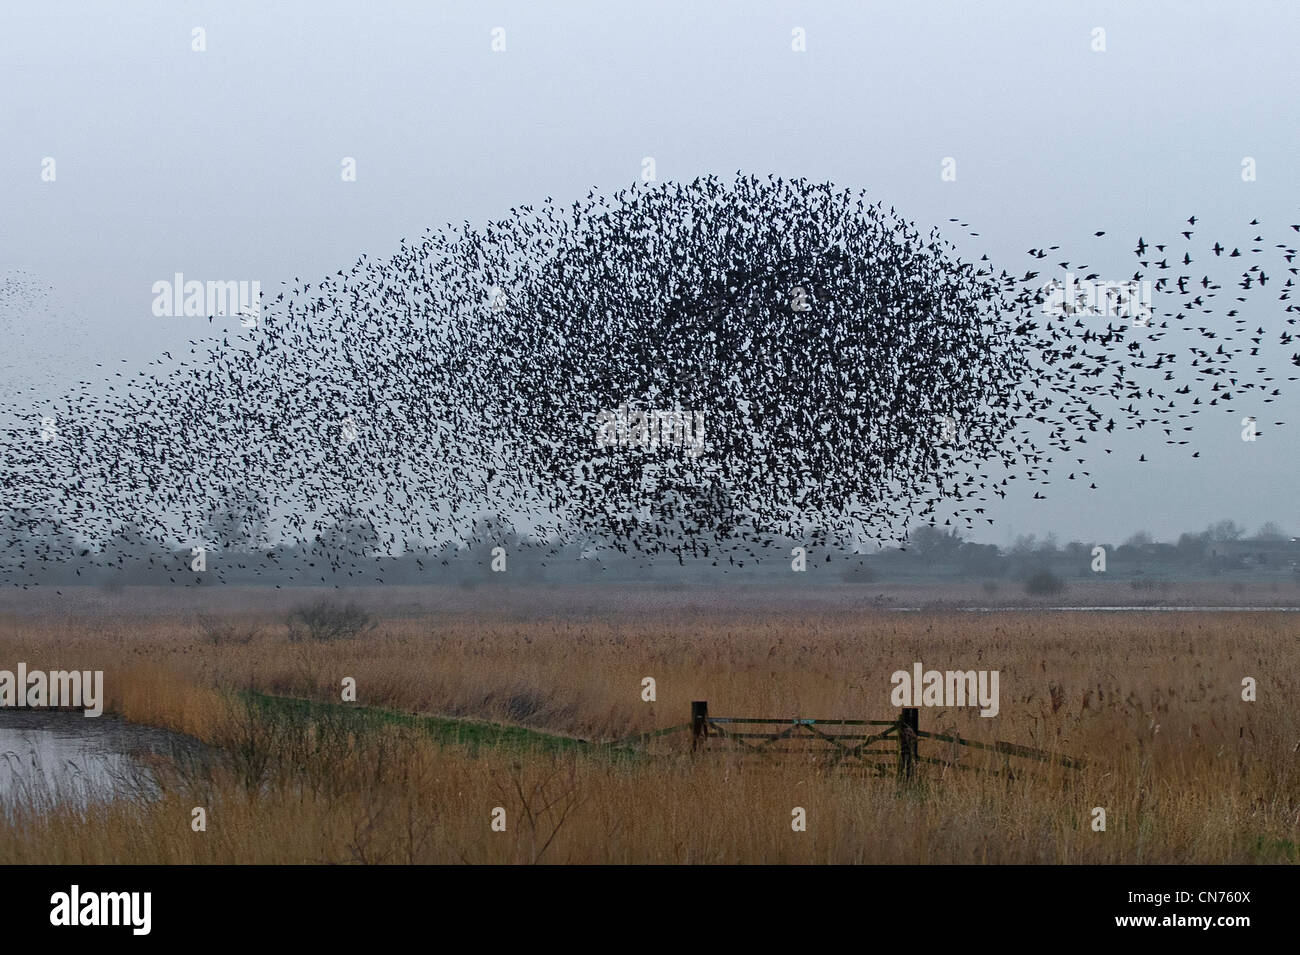 A flock of European Starlings - Stock Image